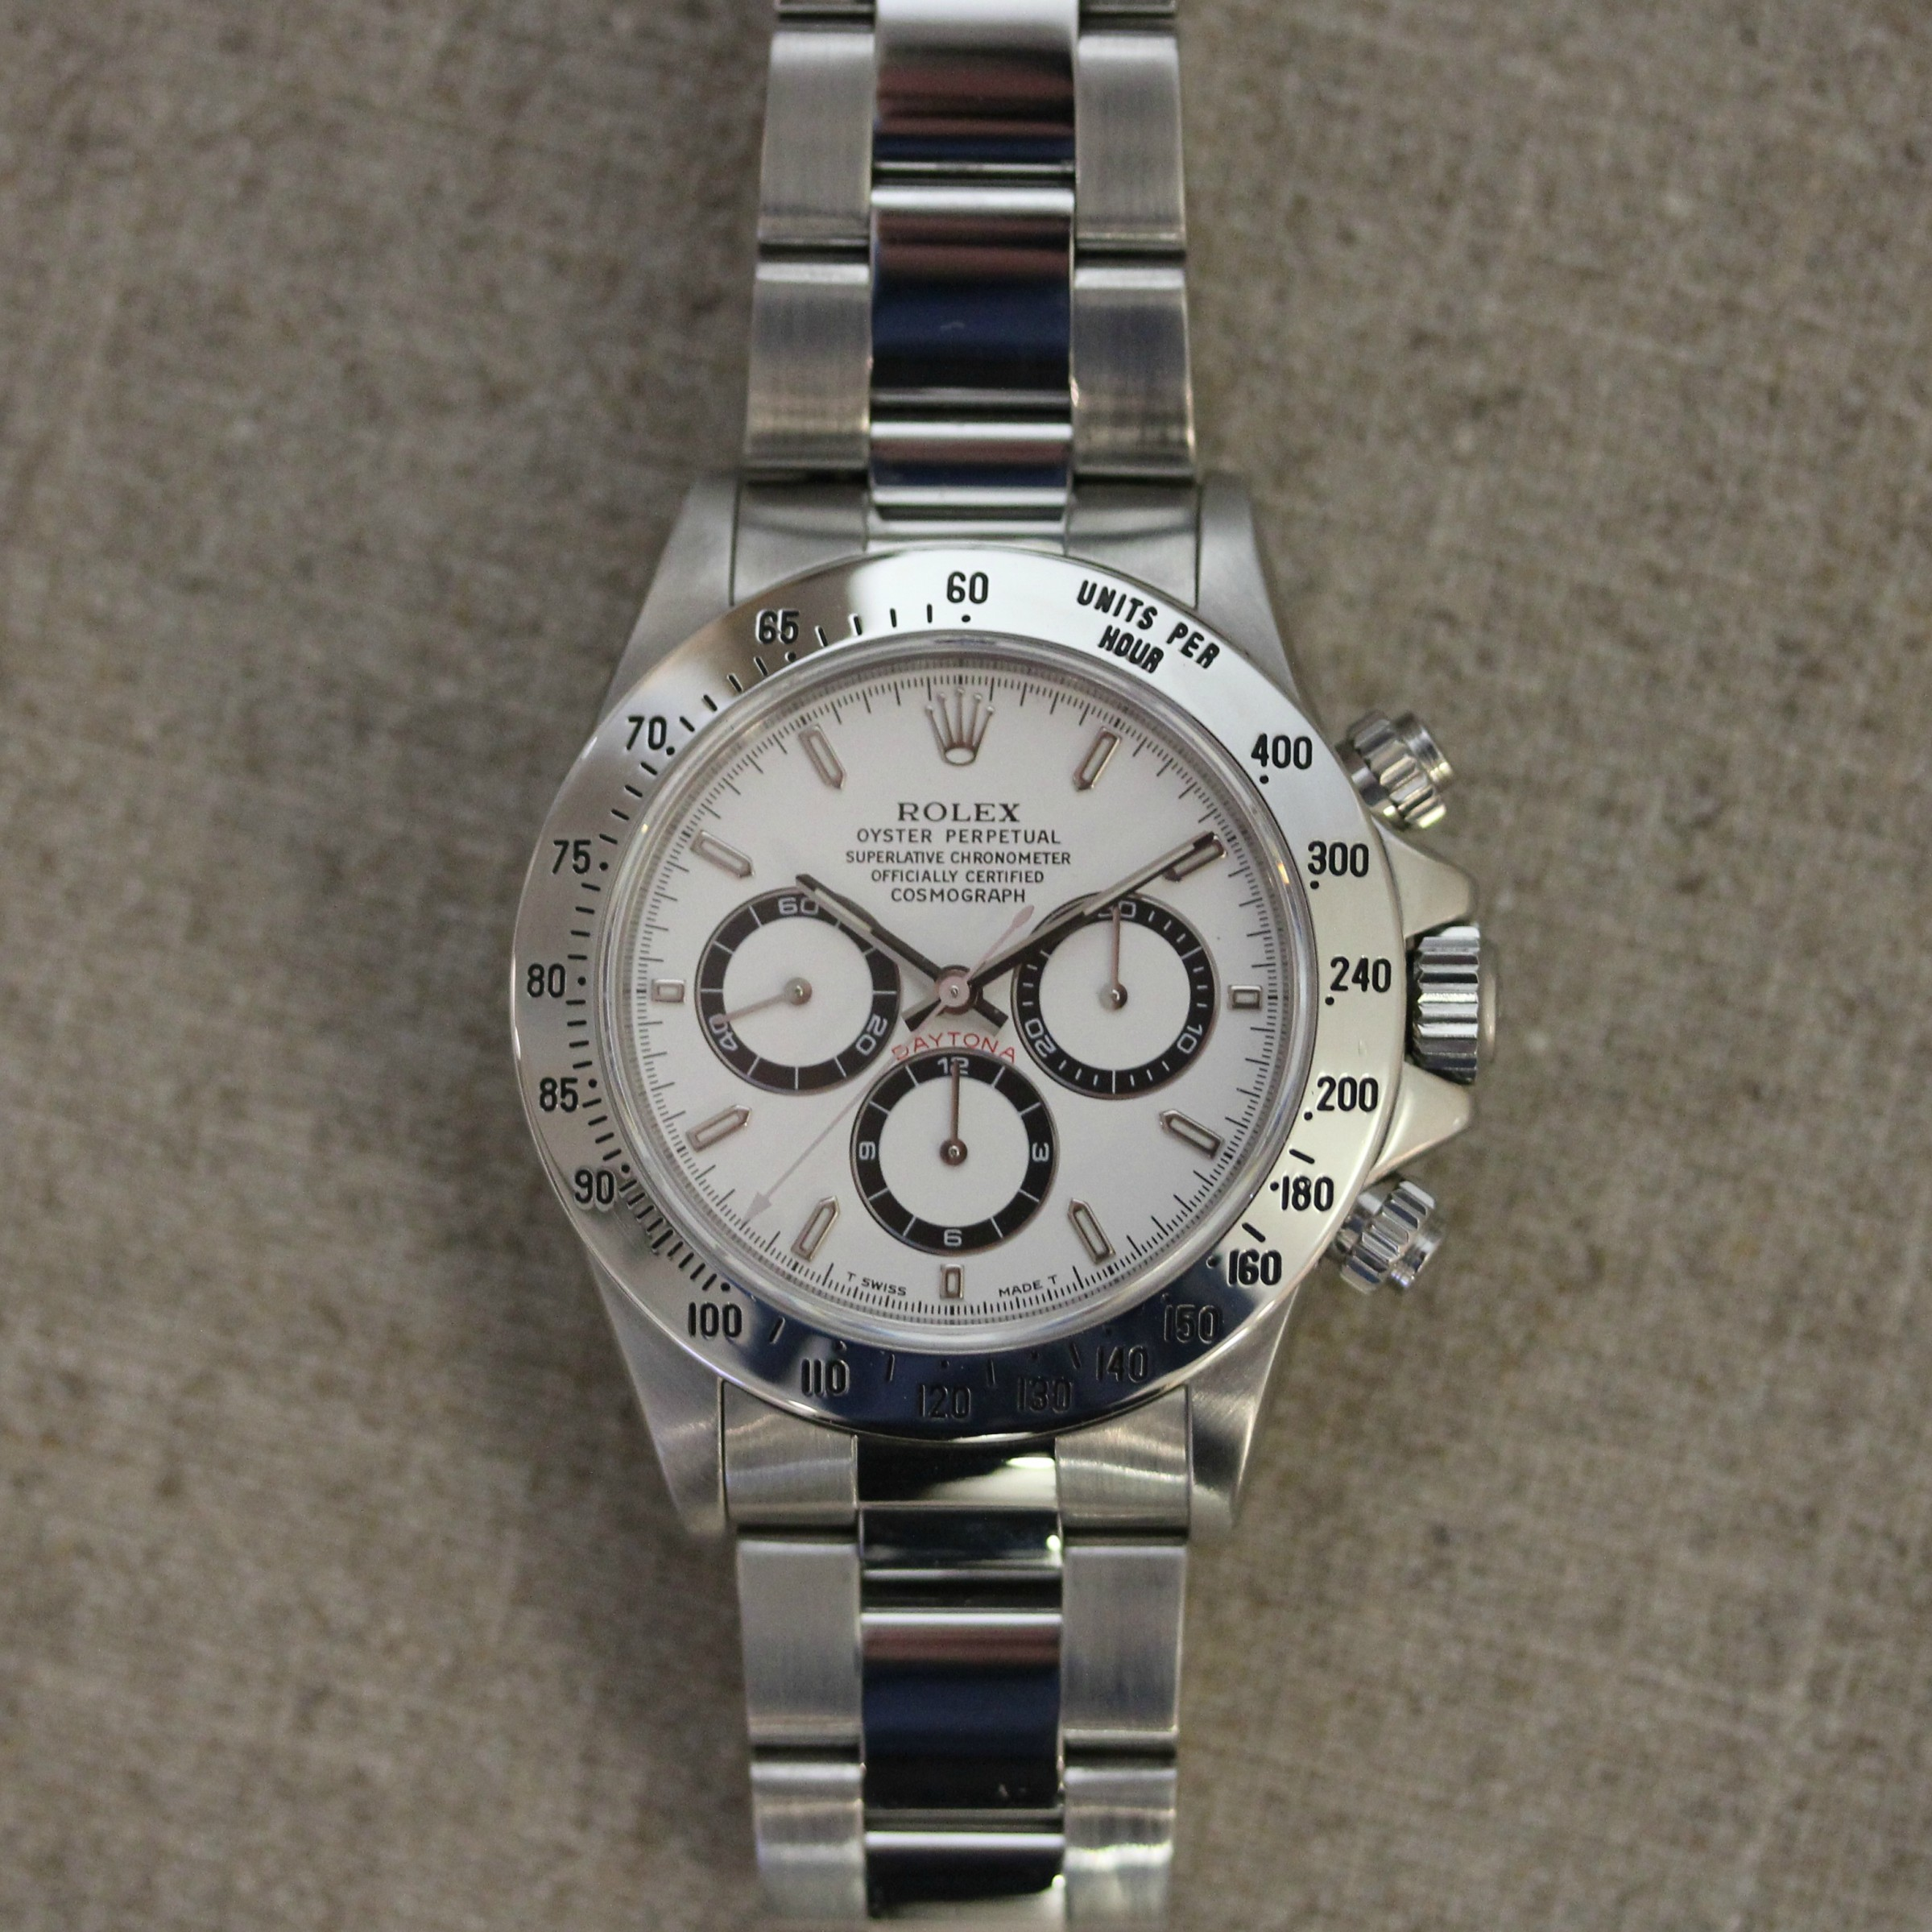 VINTAGE STAINLESS STEEL ROLEX DAYTONA 40MM WATCH WITH ZENITH MOVEMENT